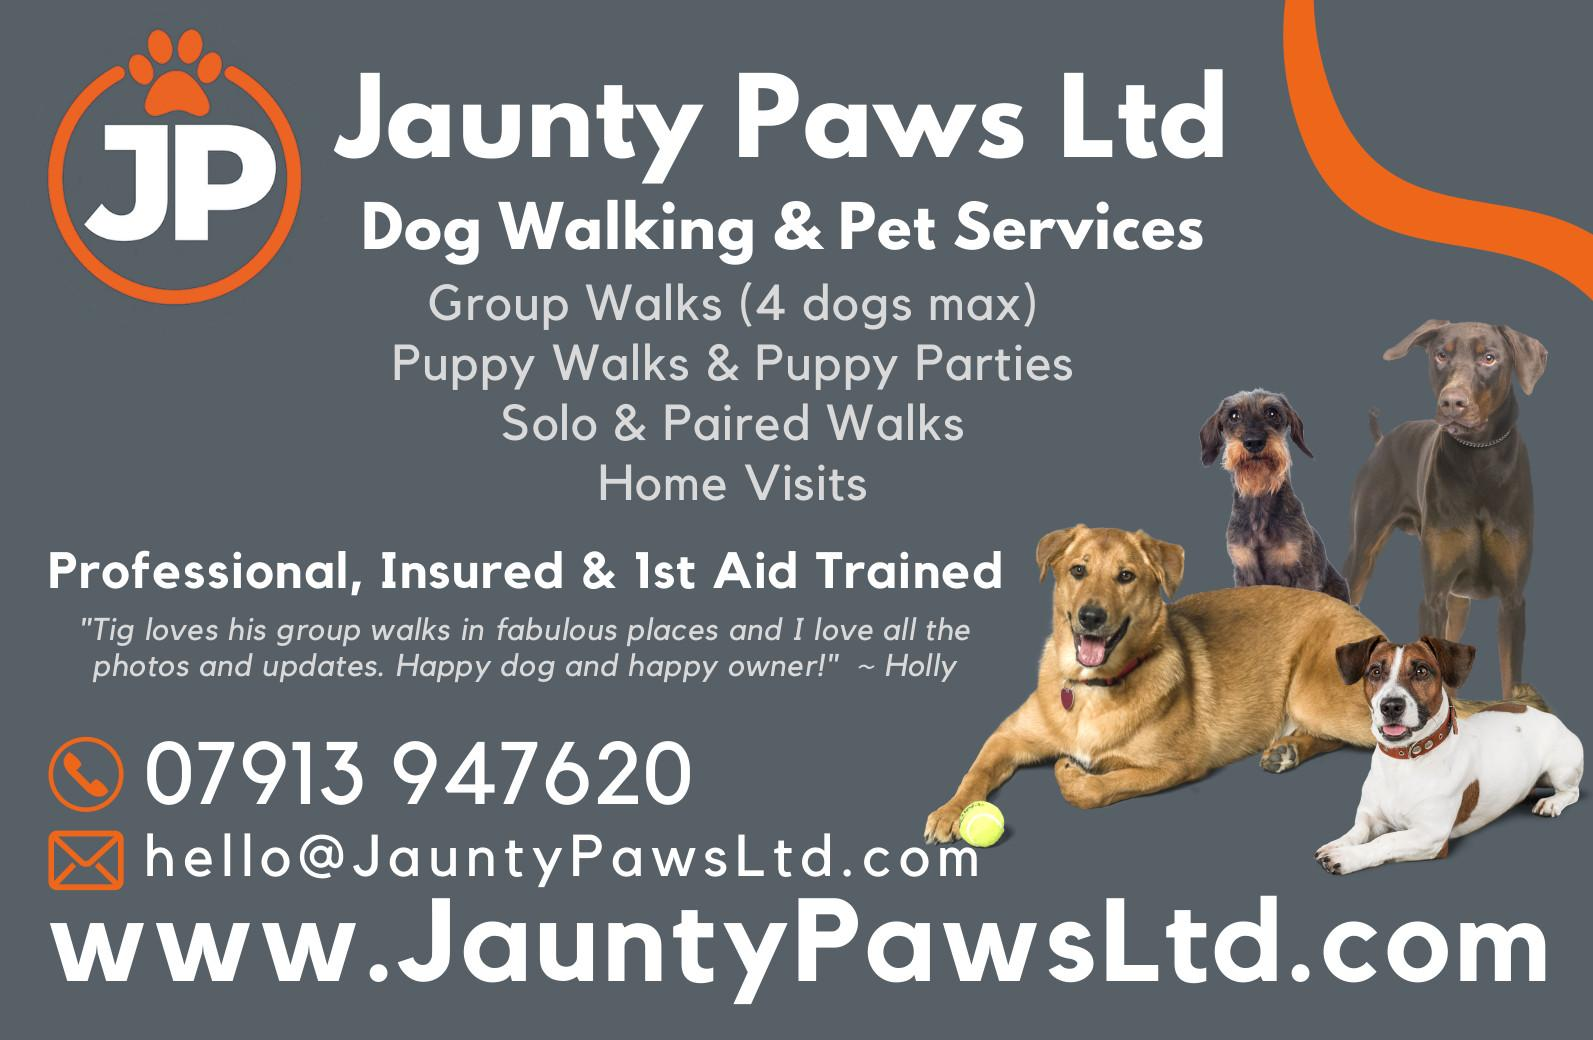 Jaunty Paws Dog & Puppy Services